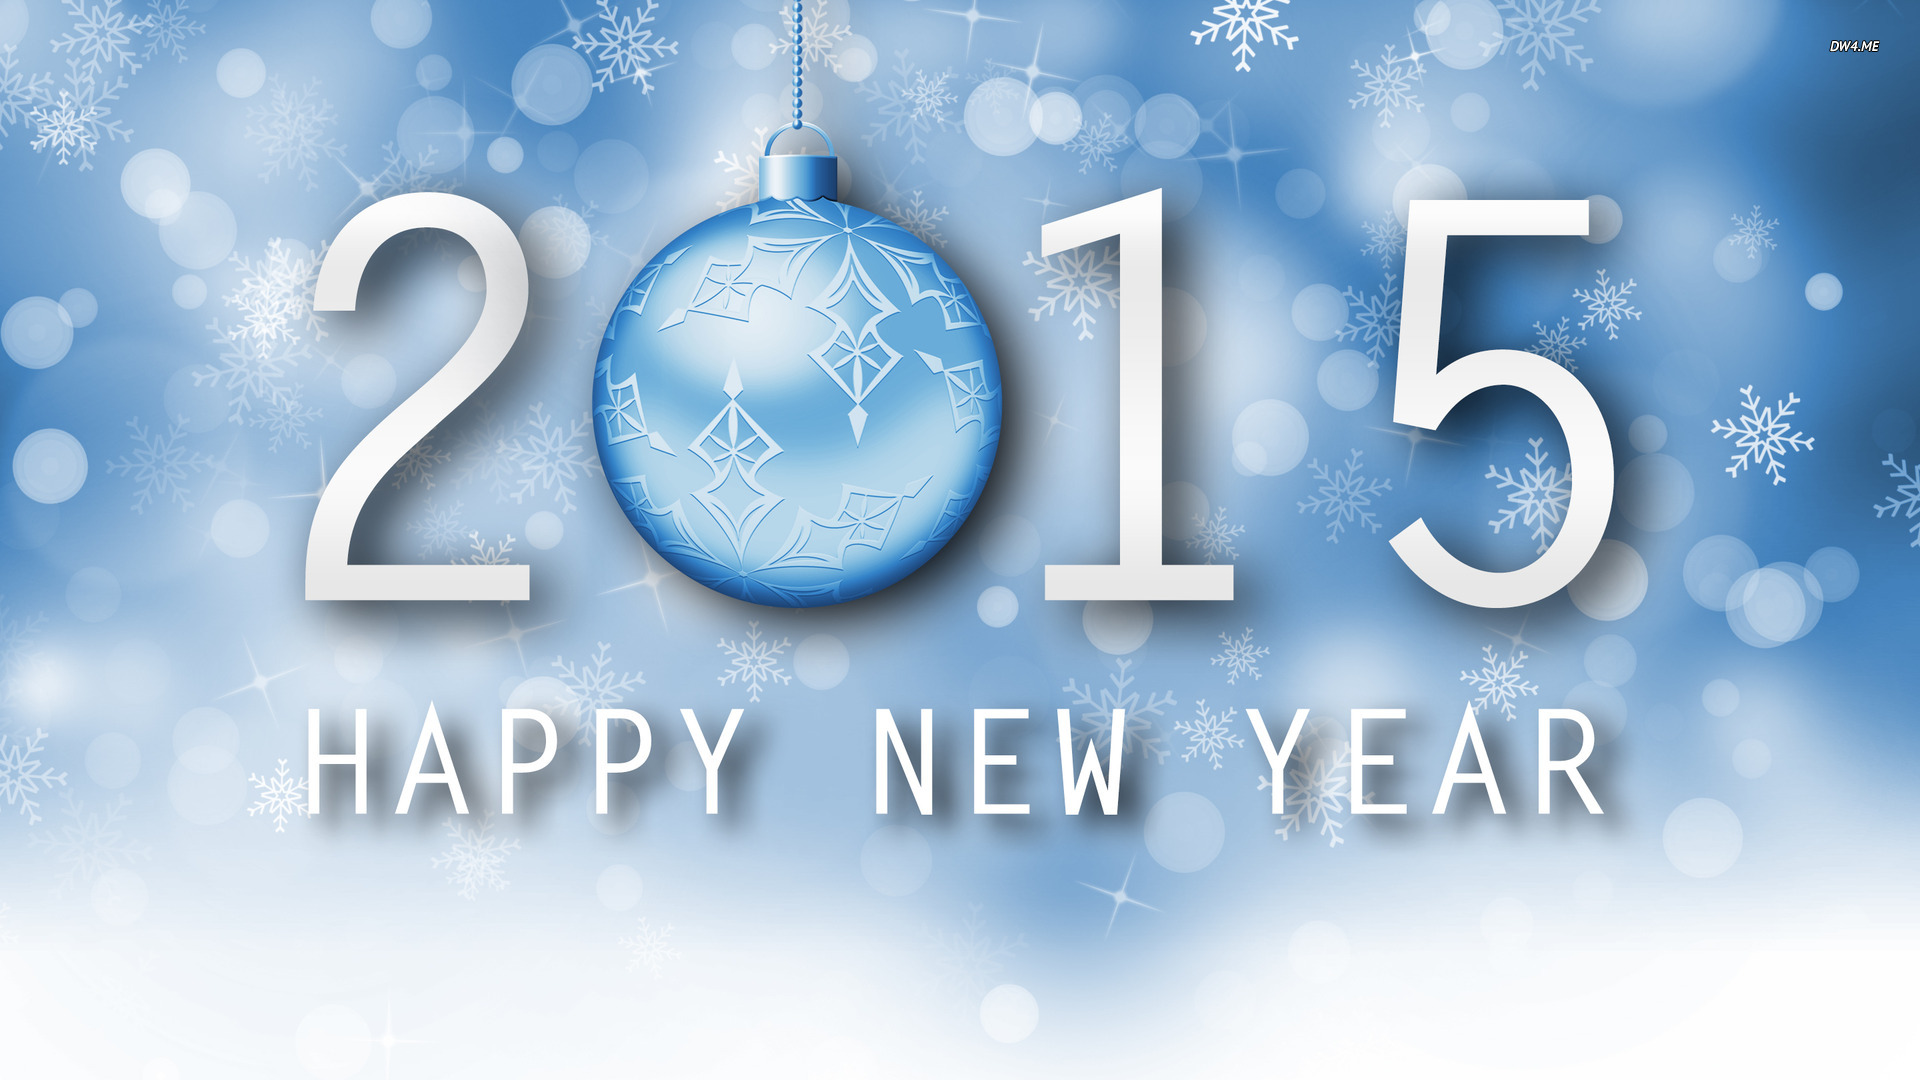 Wallpaper download new year 2015 - Download Happy New Year 2015 Balls Hd Wallpaper Search More High